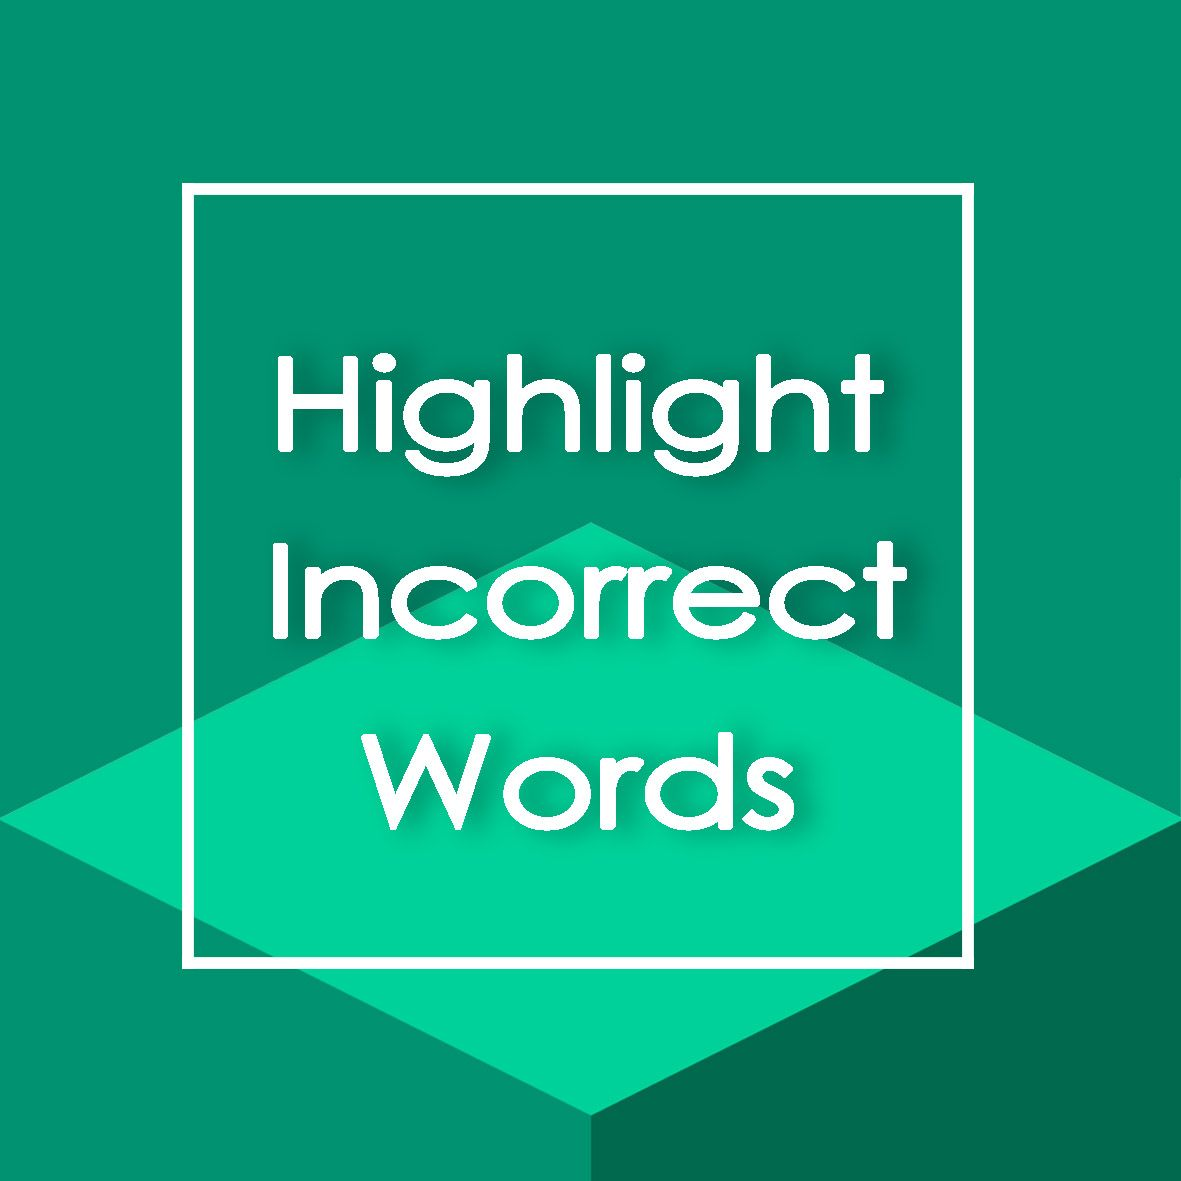 معرفی بخش Highlight Incorrect Words